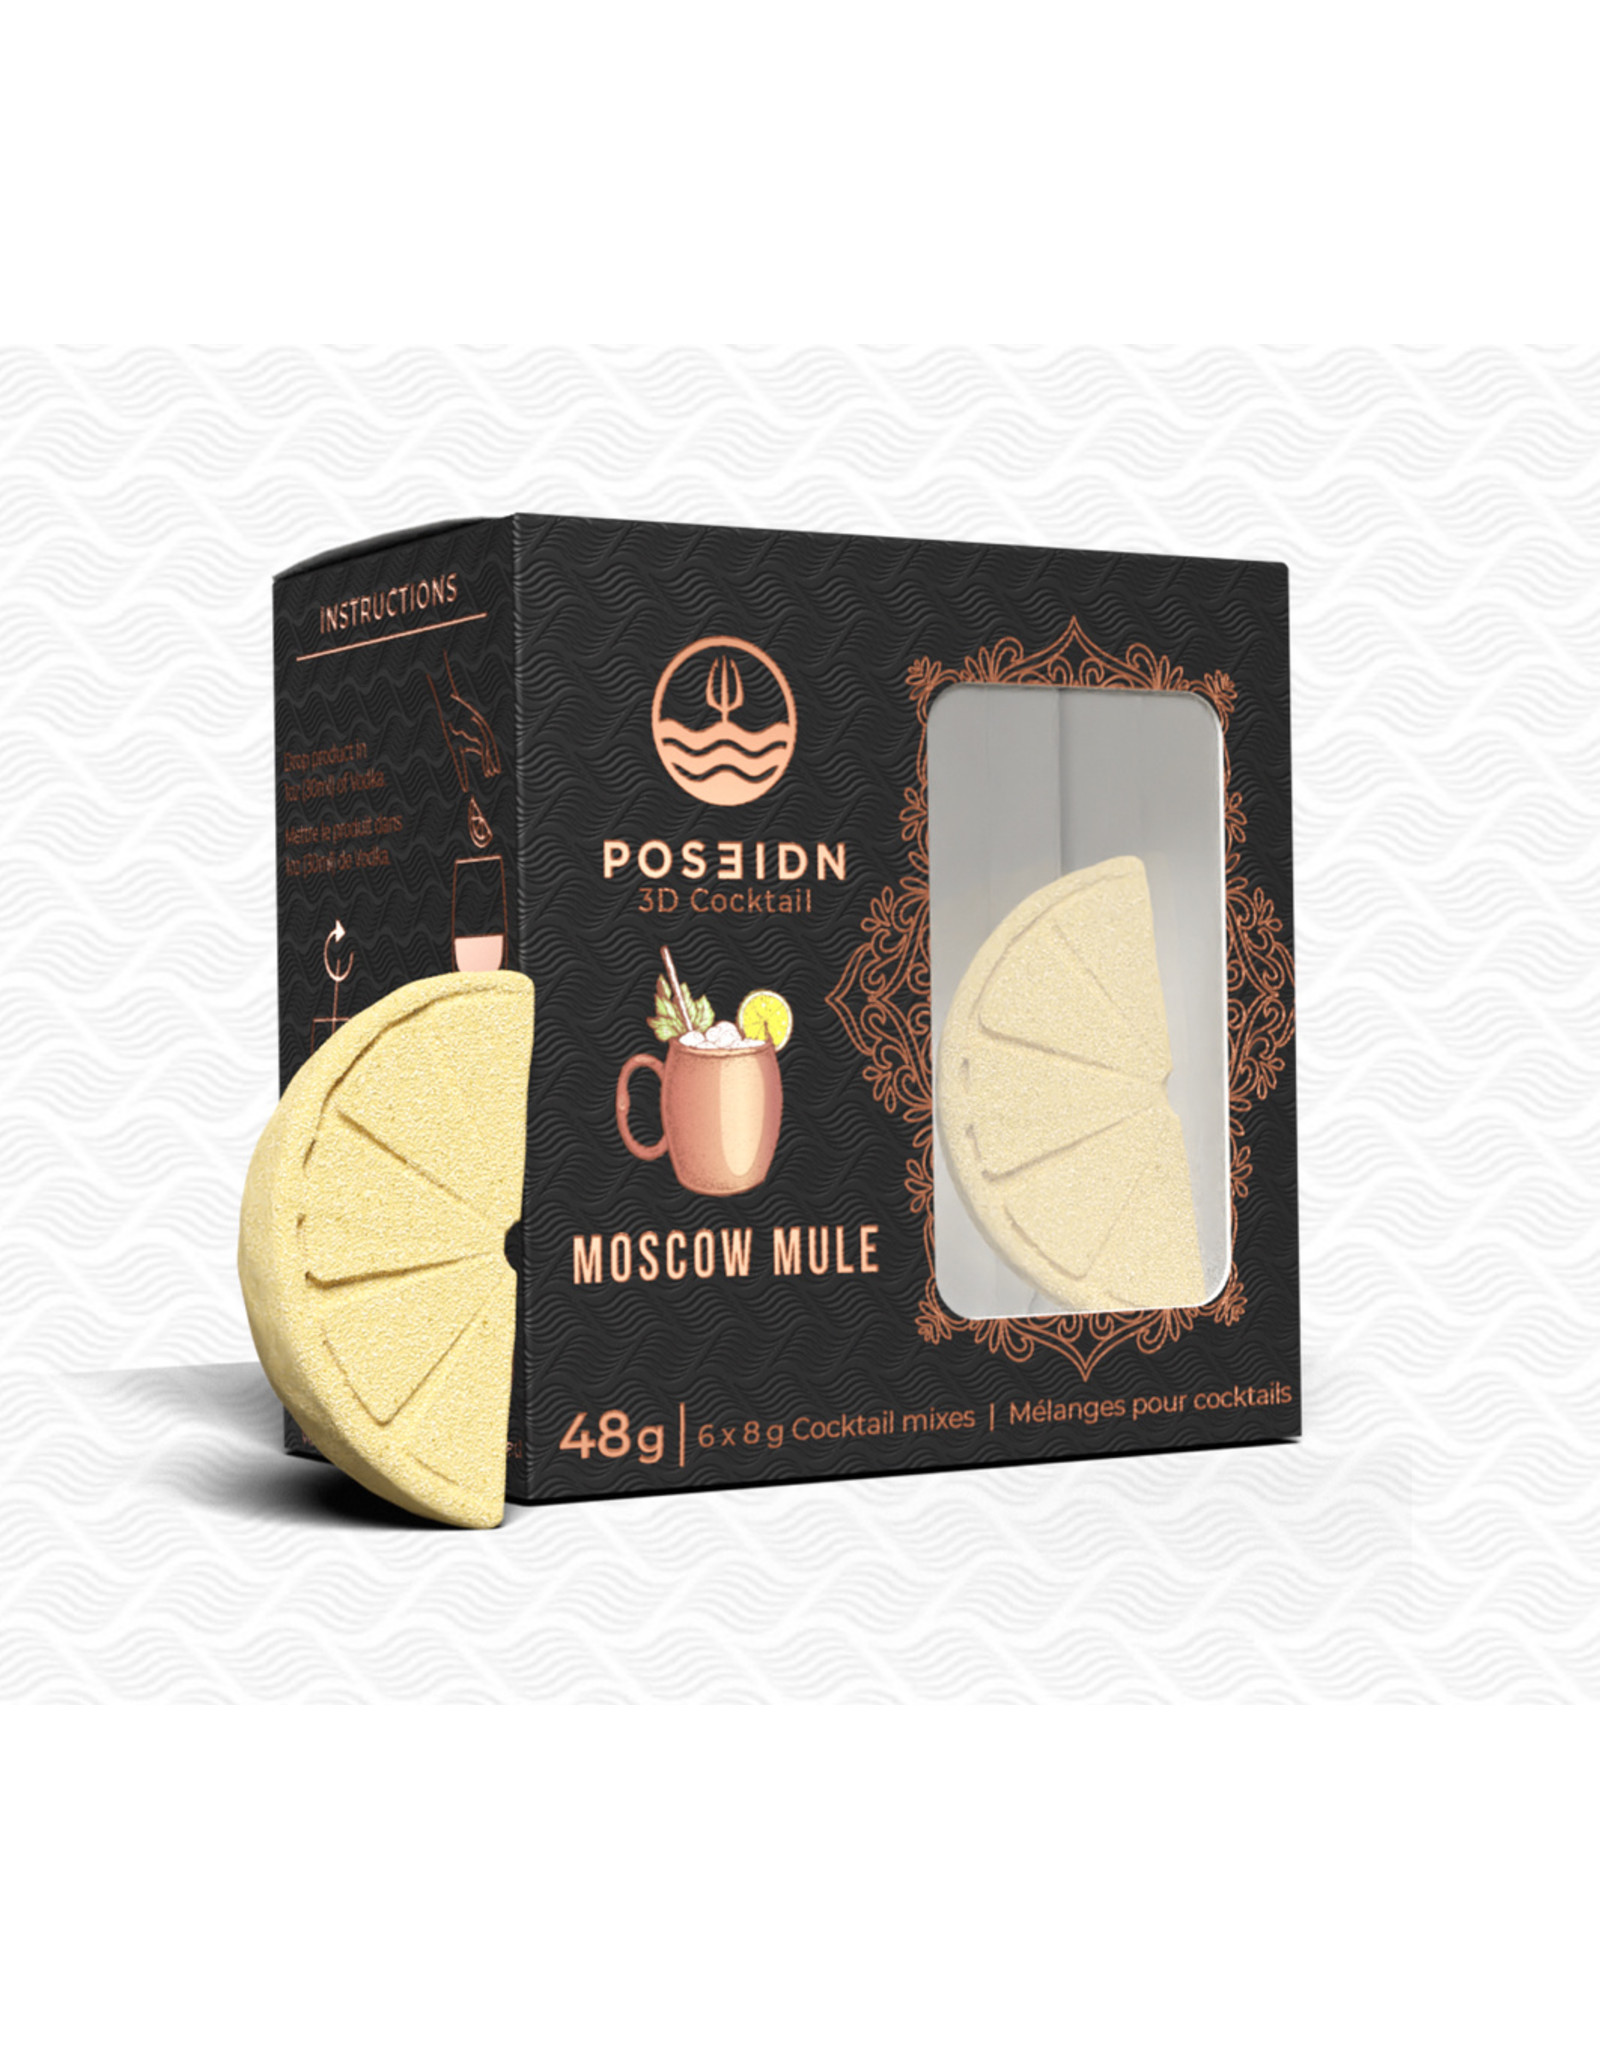 Poseidn 3D Cocktail Moscow Mule